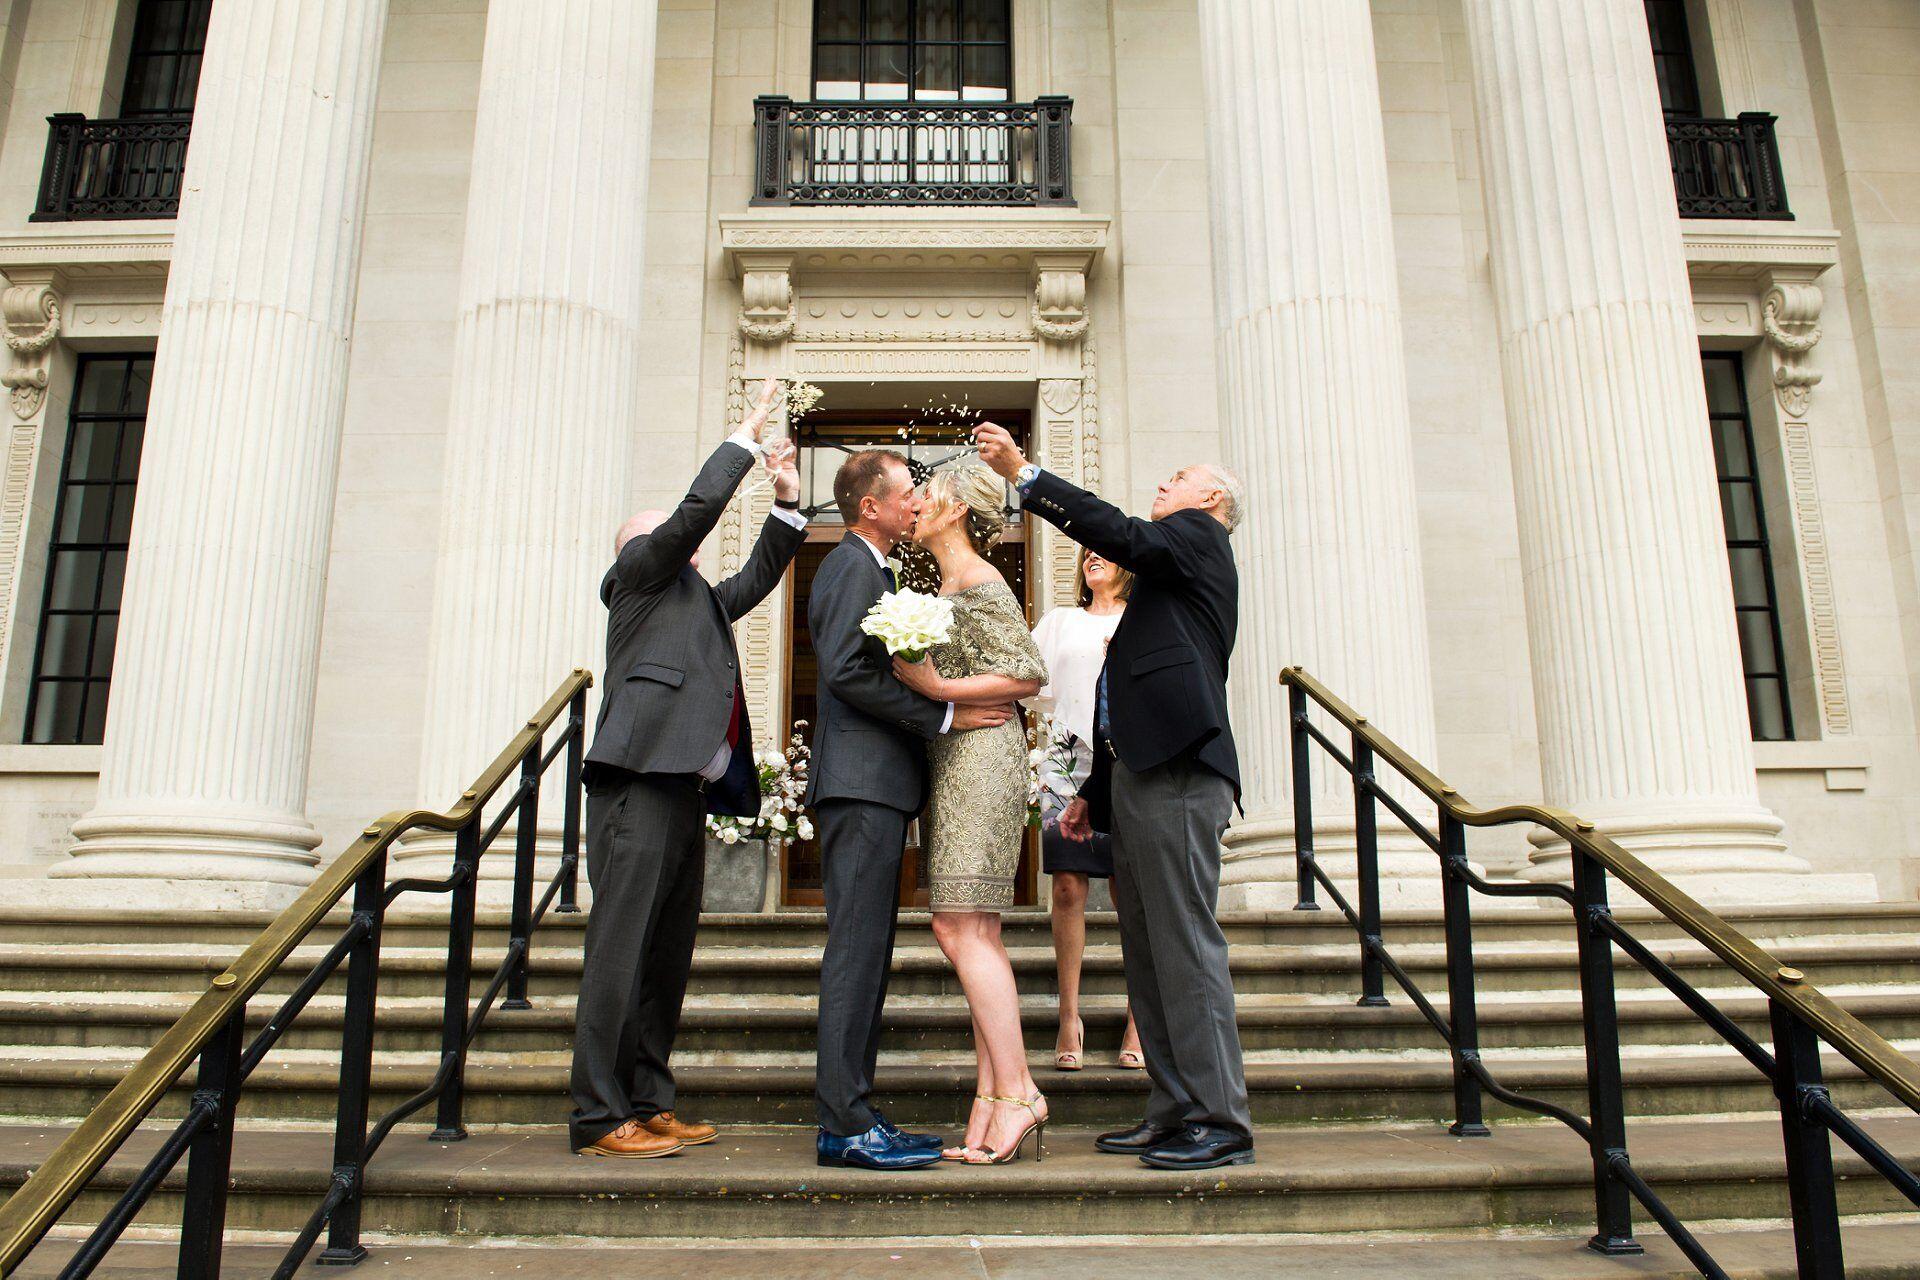 michael and brenda kissing on the steps of marylebone registry office with guests throwing confetti